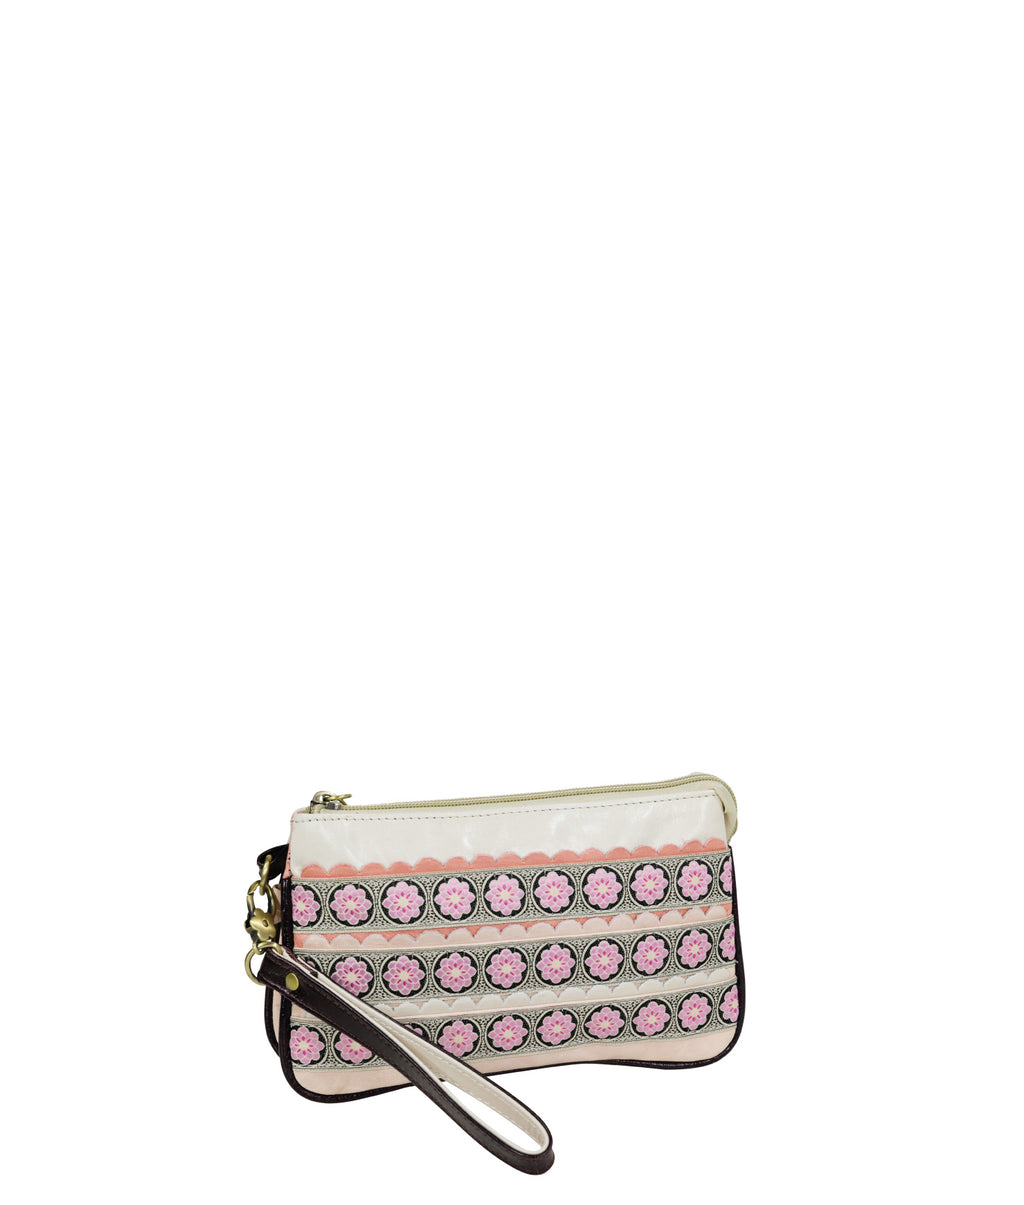 POPPY Crossbody Clutch - Tea Party